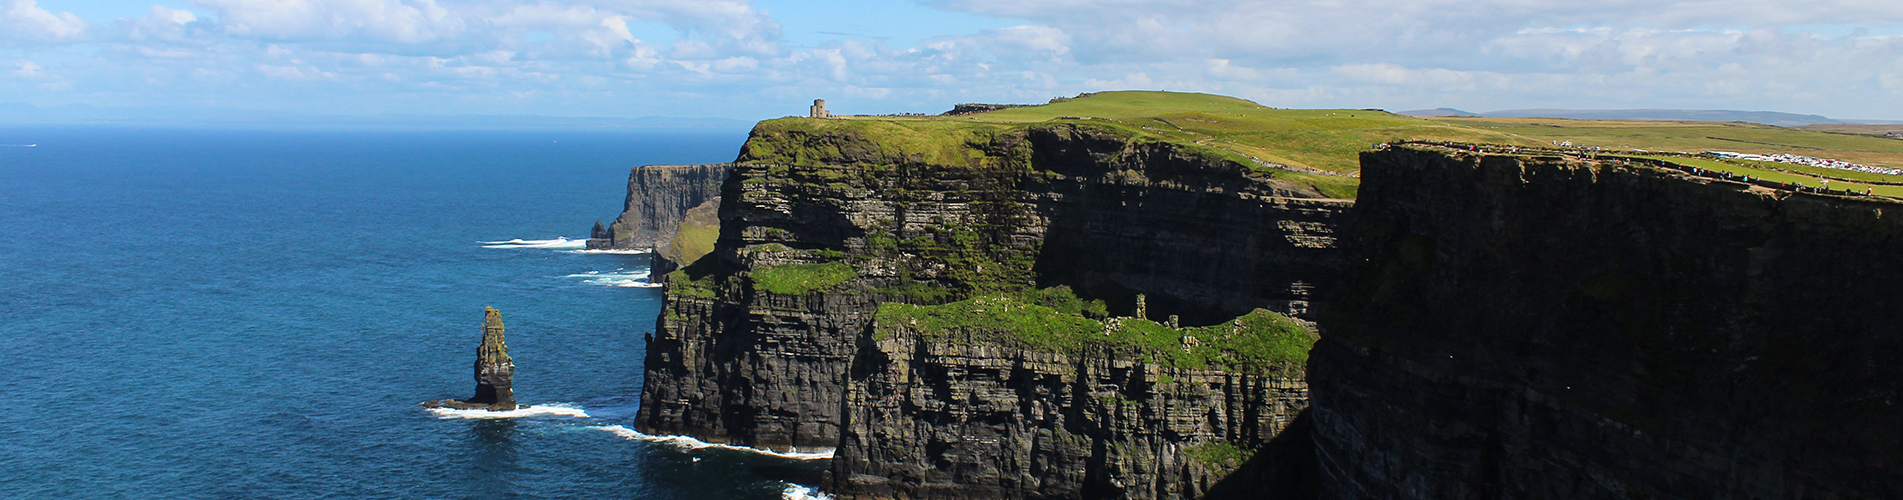 "EXPLORING IRELAND:<br><span class=""title-sm"">THE CLIFFS OF MOHER; COUNTY CLARE</span>"